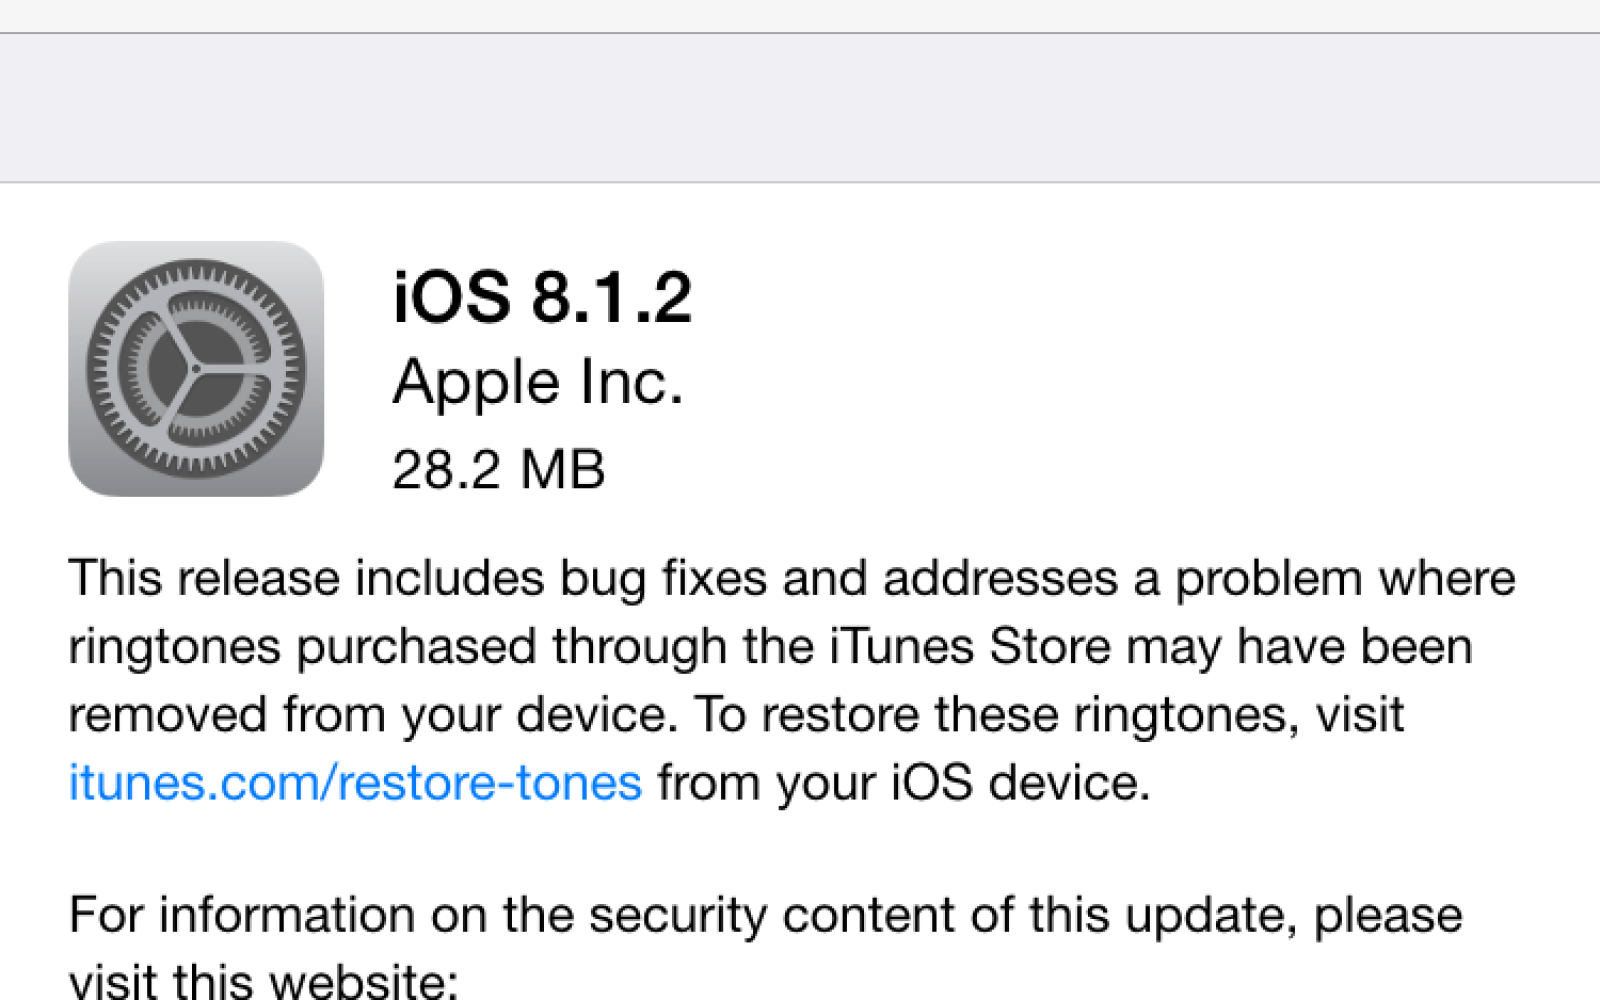 Apple releases iOS 8.1.2 with fixes for bugs including ringtone issues